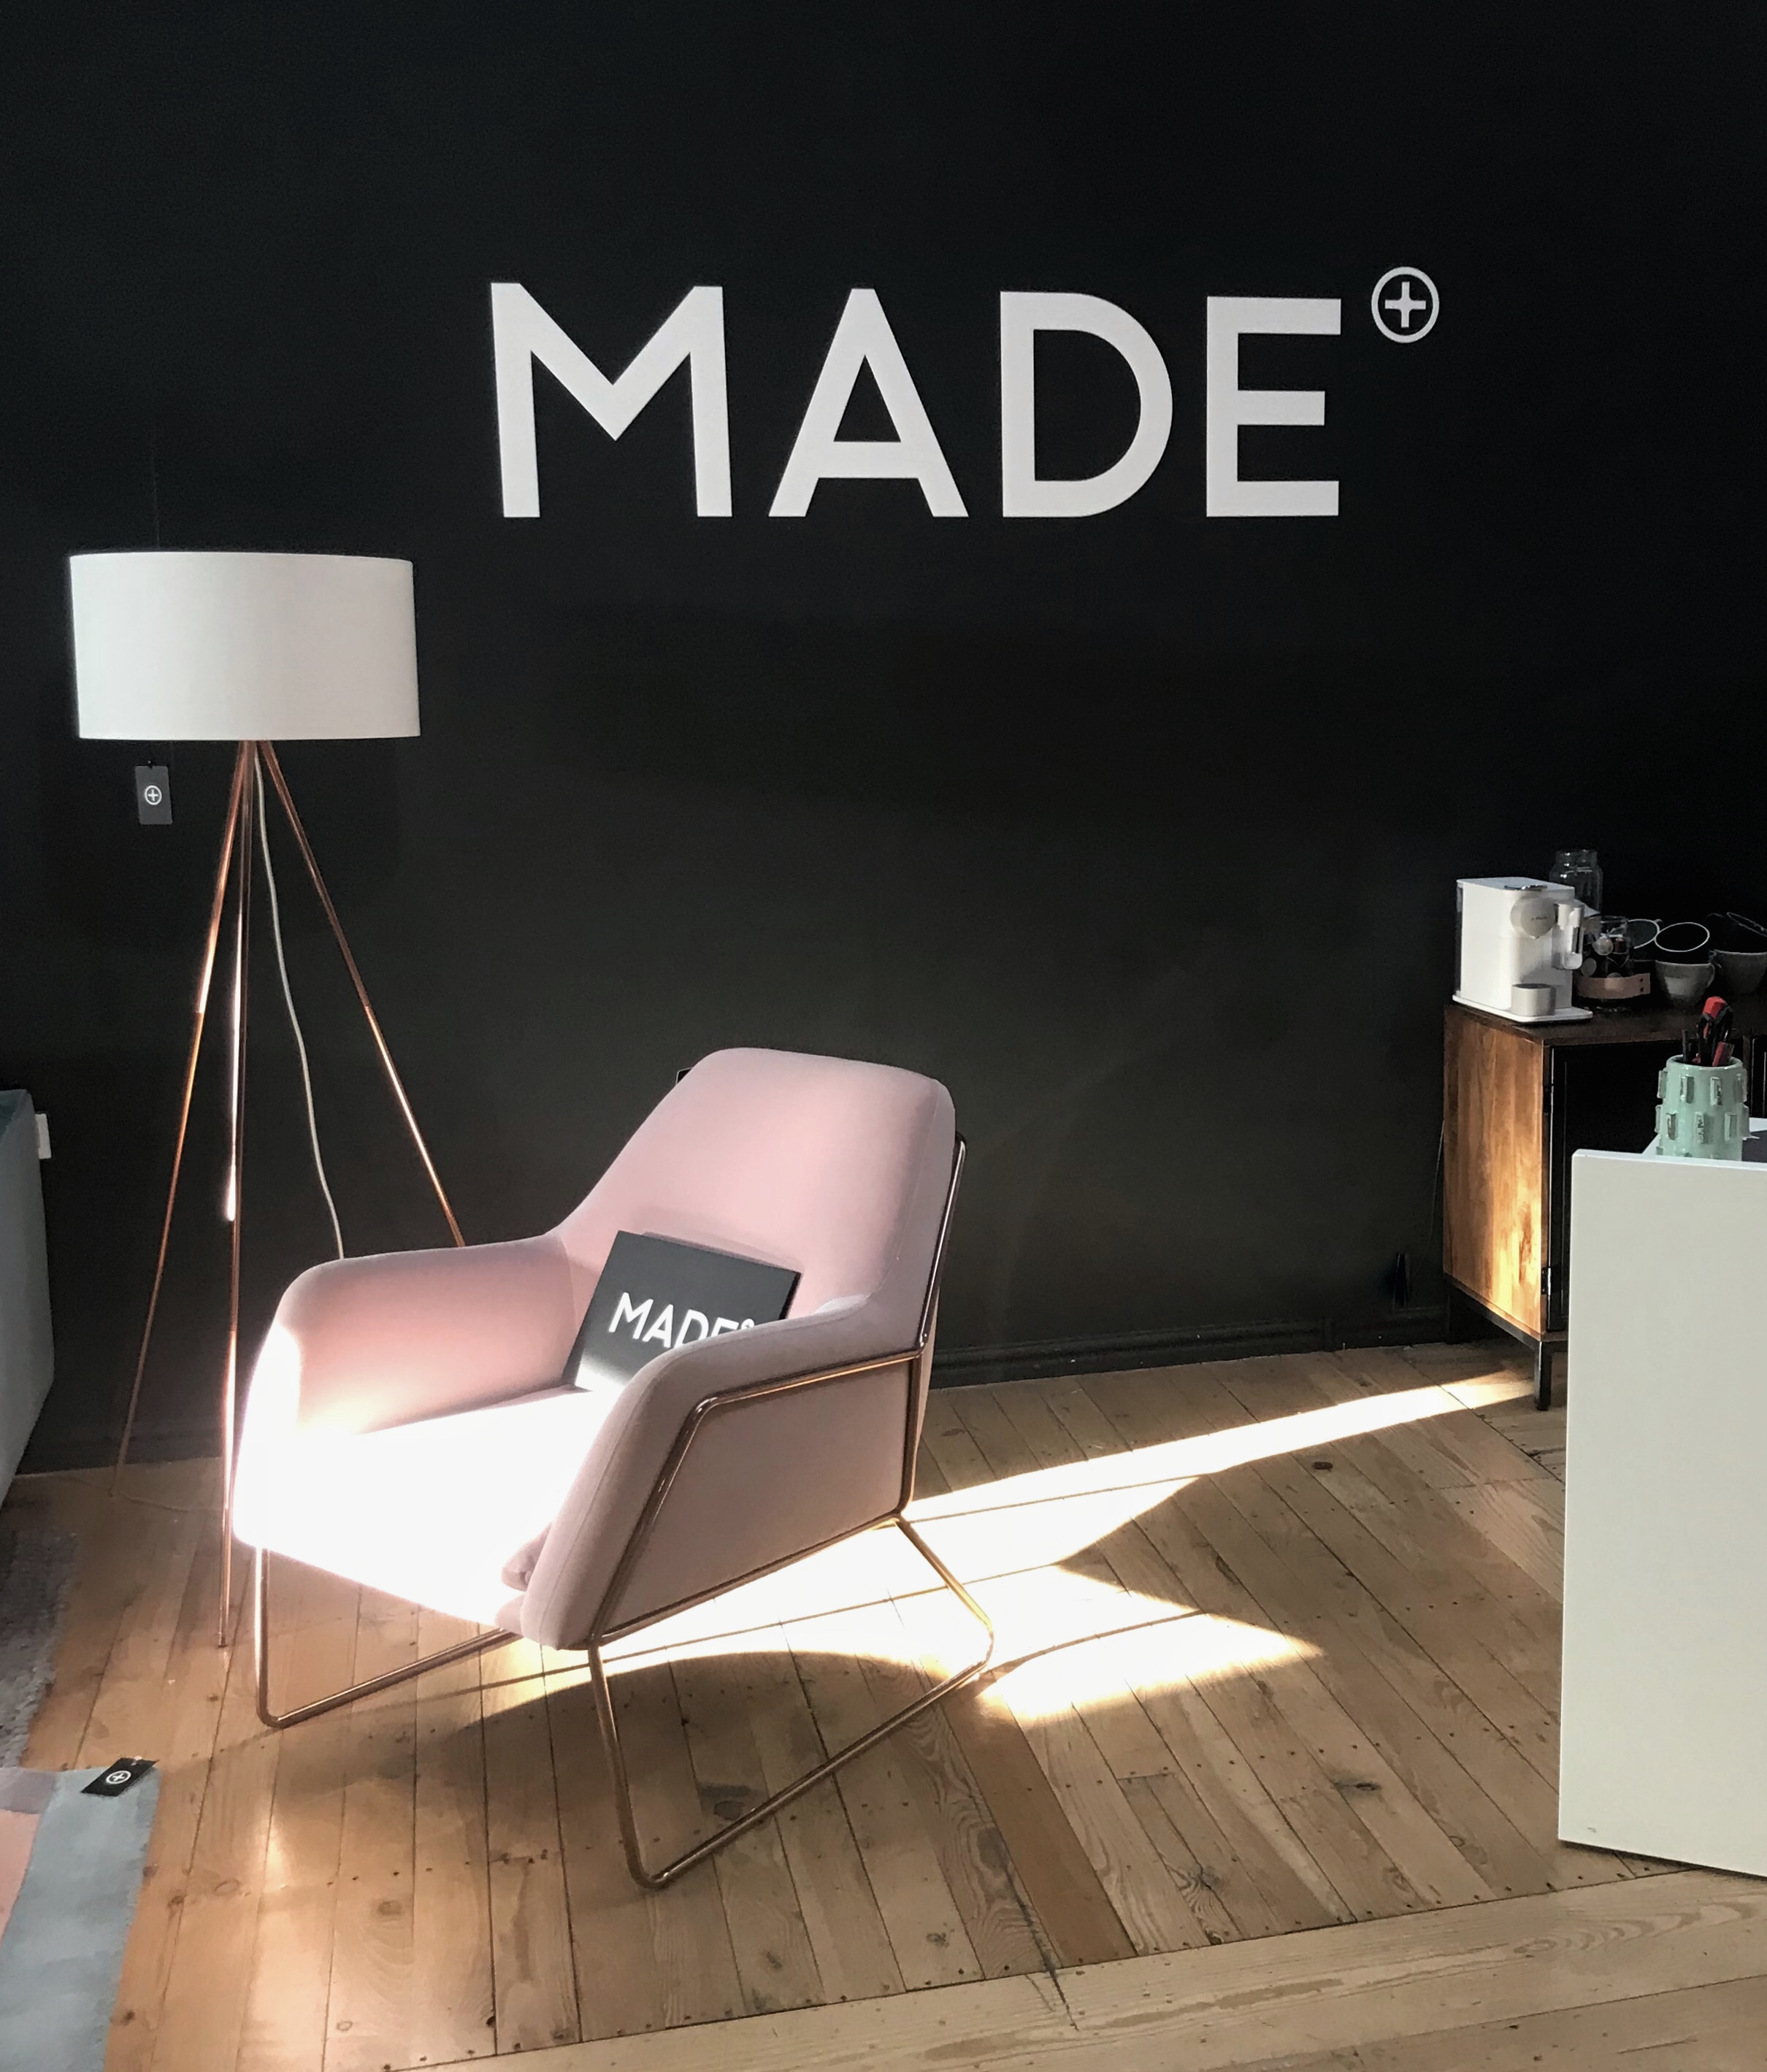 You'll find Made.com on the 3rd floor - they occupy a whole floor showcasing seriously stunning furniture. I absolutely love this FRAME chair in blush cotton with gold frame and the way it stands out against the black wall is totally up my street (you can tell I'm a Northerner with a statement like that!) Its high on my wish list for my new bedroom. Also, I have to say the staff in Made.com are uber stylish and so, so friendly.